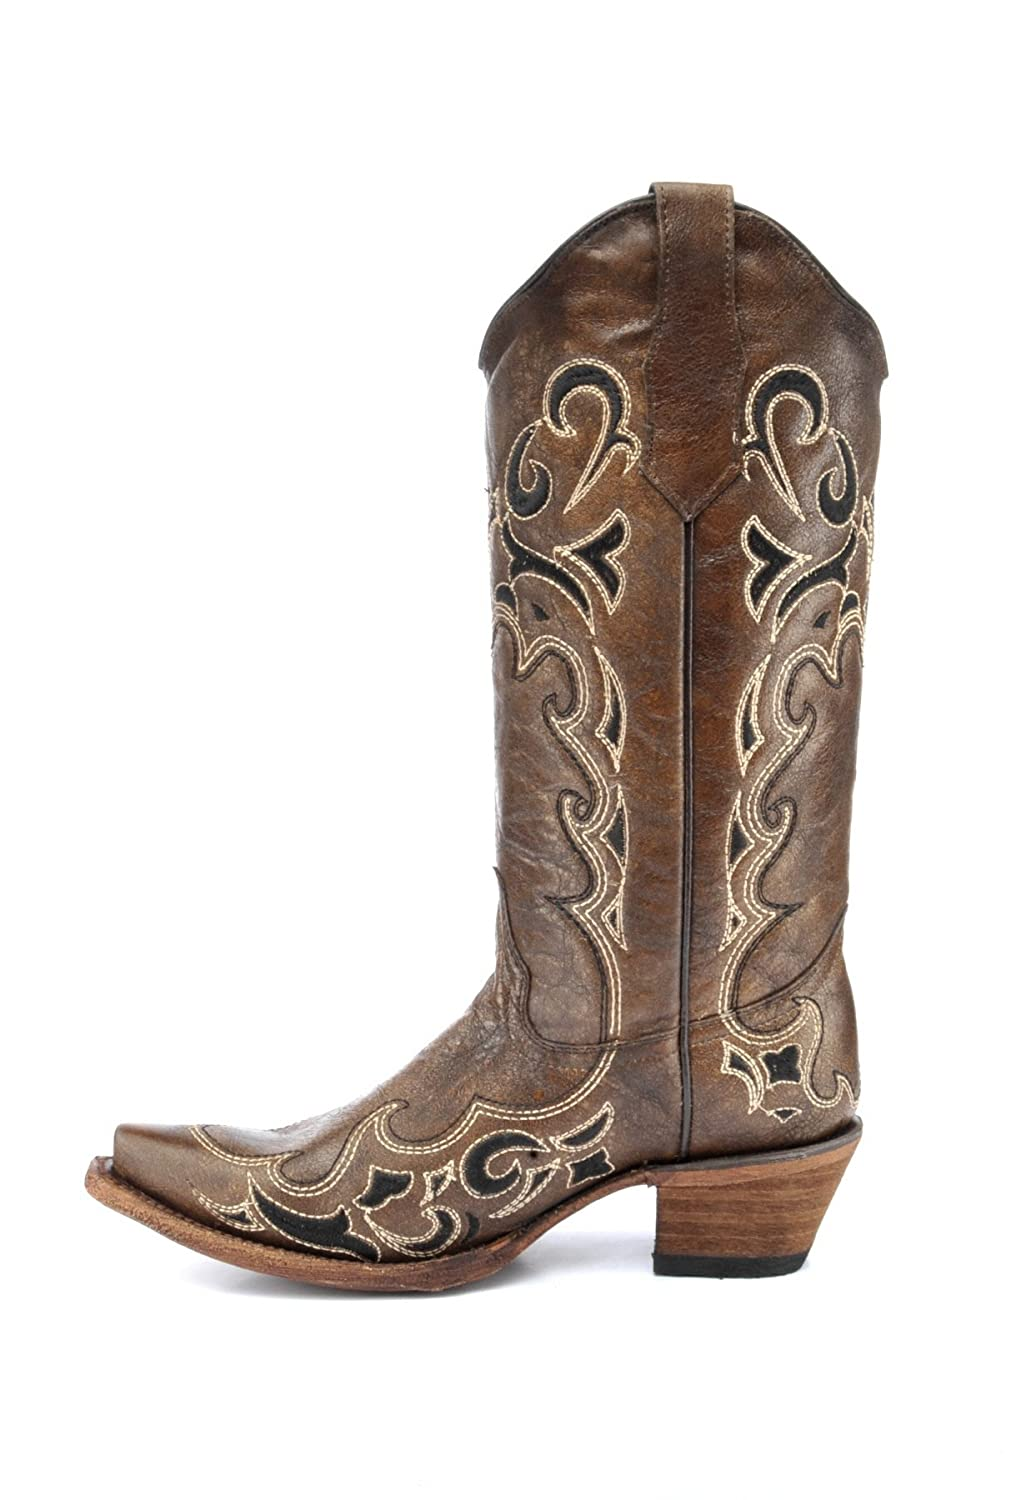 Corral Circle G Boot Womens 12-Inch Distressed Leather Side Embroidery Snip Toe Brown//Black Western Boot